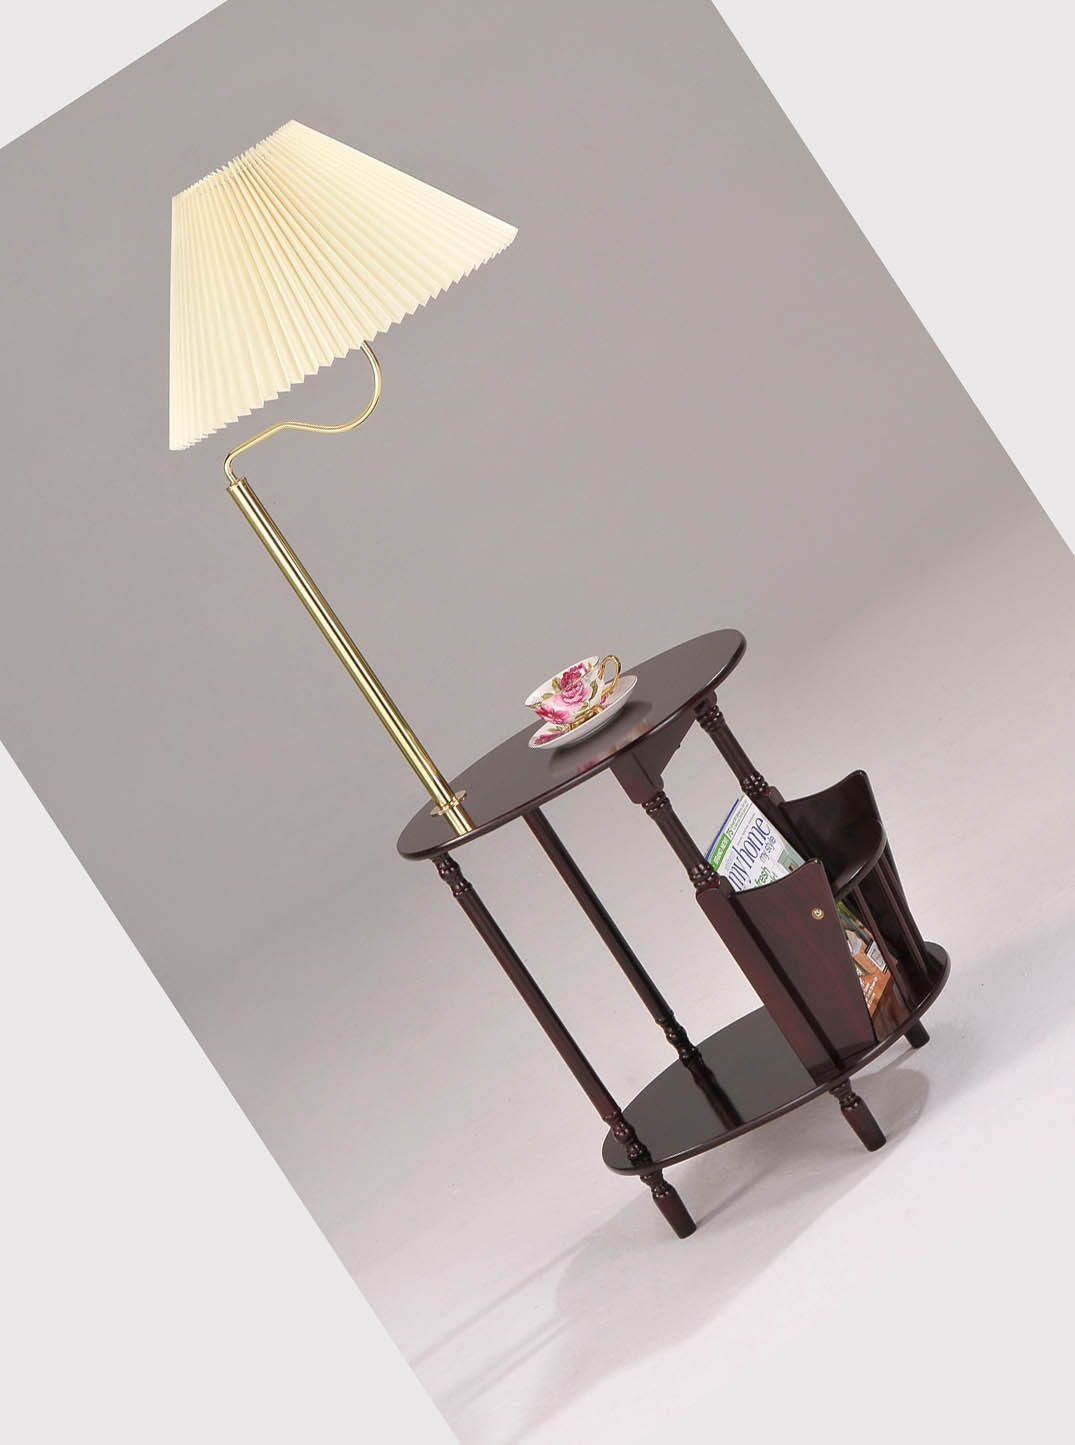 upholstenight lamps for bedroom. End Table With Lamp Attached by 10 Facts To Know About Lamps Warisan  Lighting 100 Modern Night Stands upholstenight lamps for bedroom coachfactoryoutletmap net Upholstenight For Bedroom